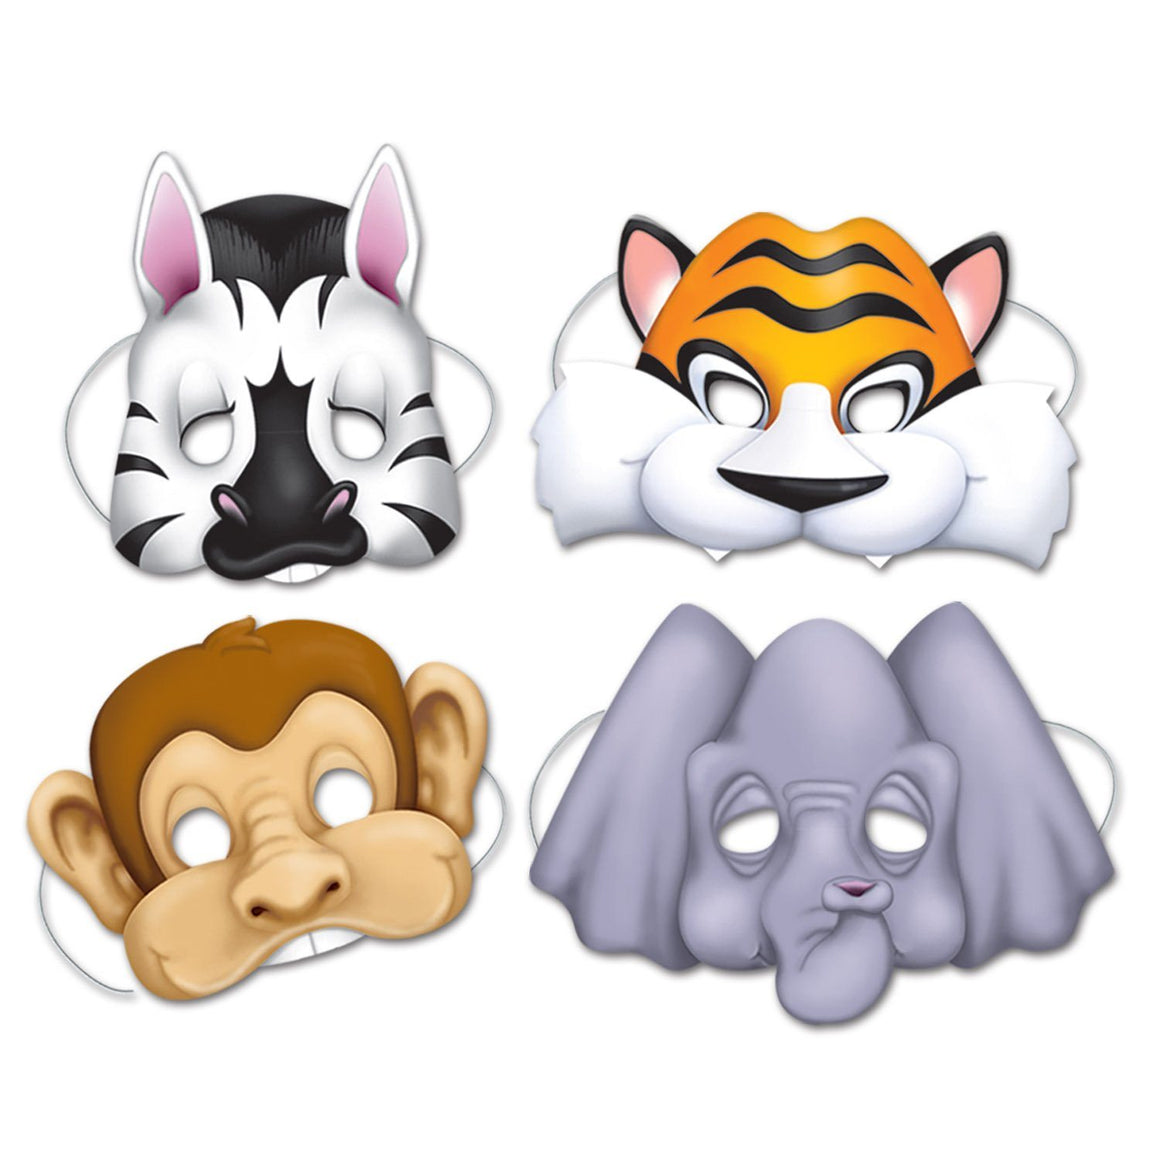 MASKS - JUNGLE ANIMAL 4 PACK